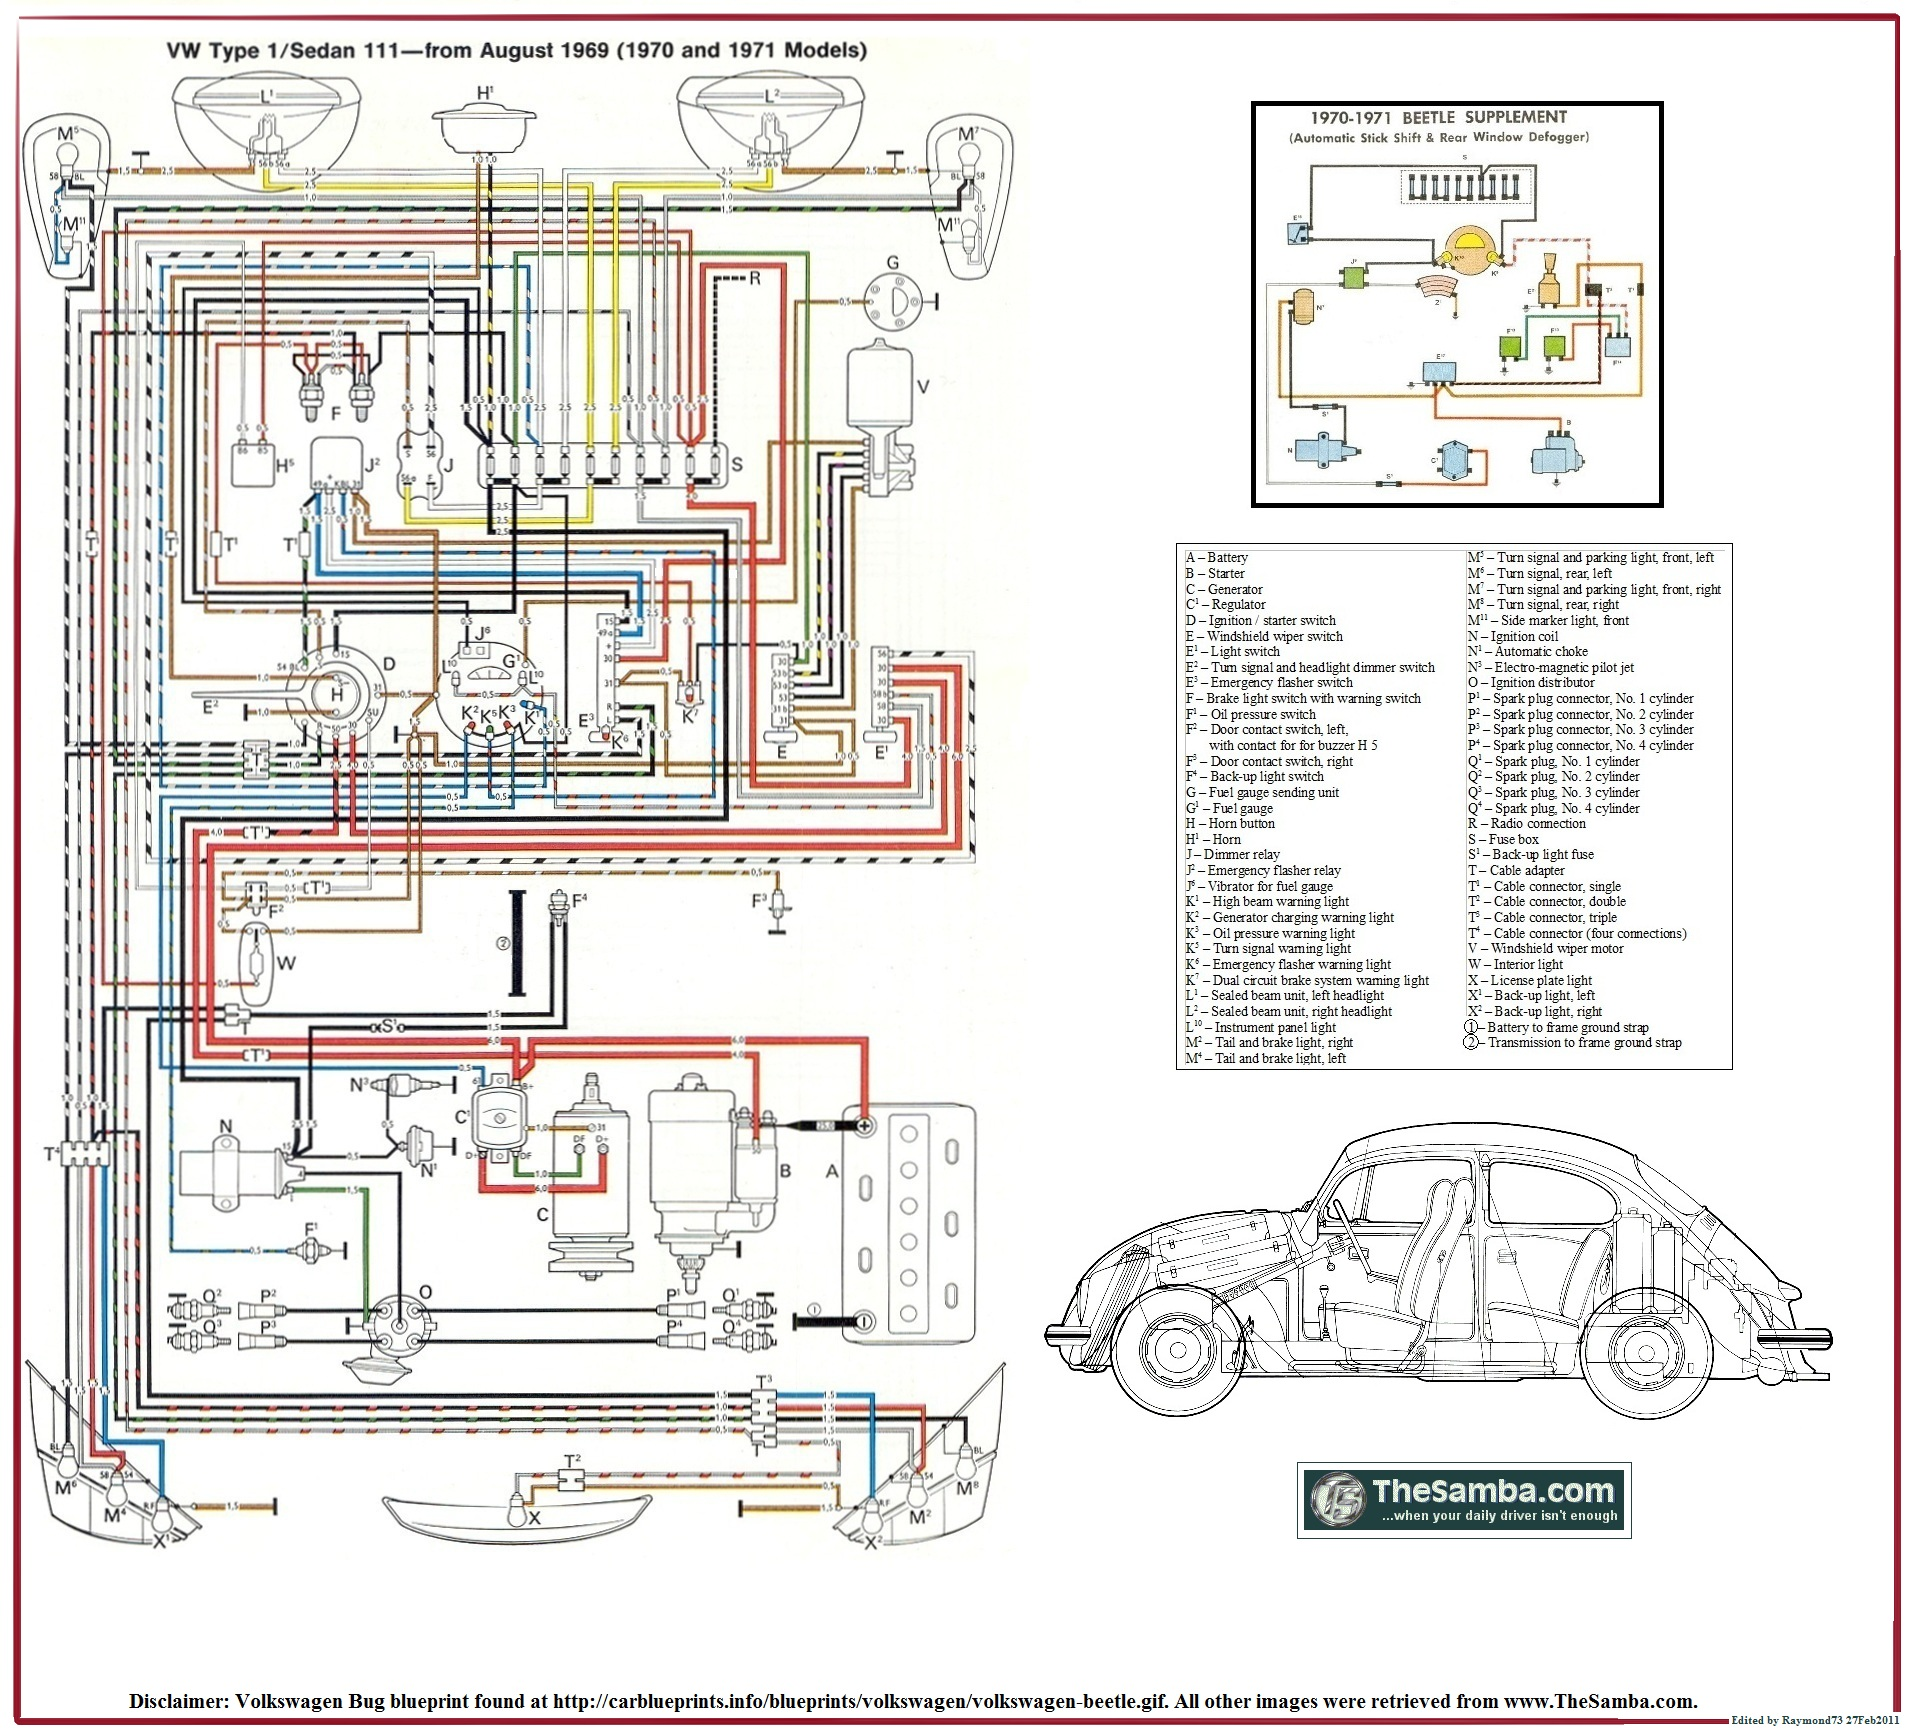 1970_VW_Type_1_Poster thesamba com beetle late model super 1968 up view topic vw bug wiring diagram at eliteediting.co